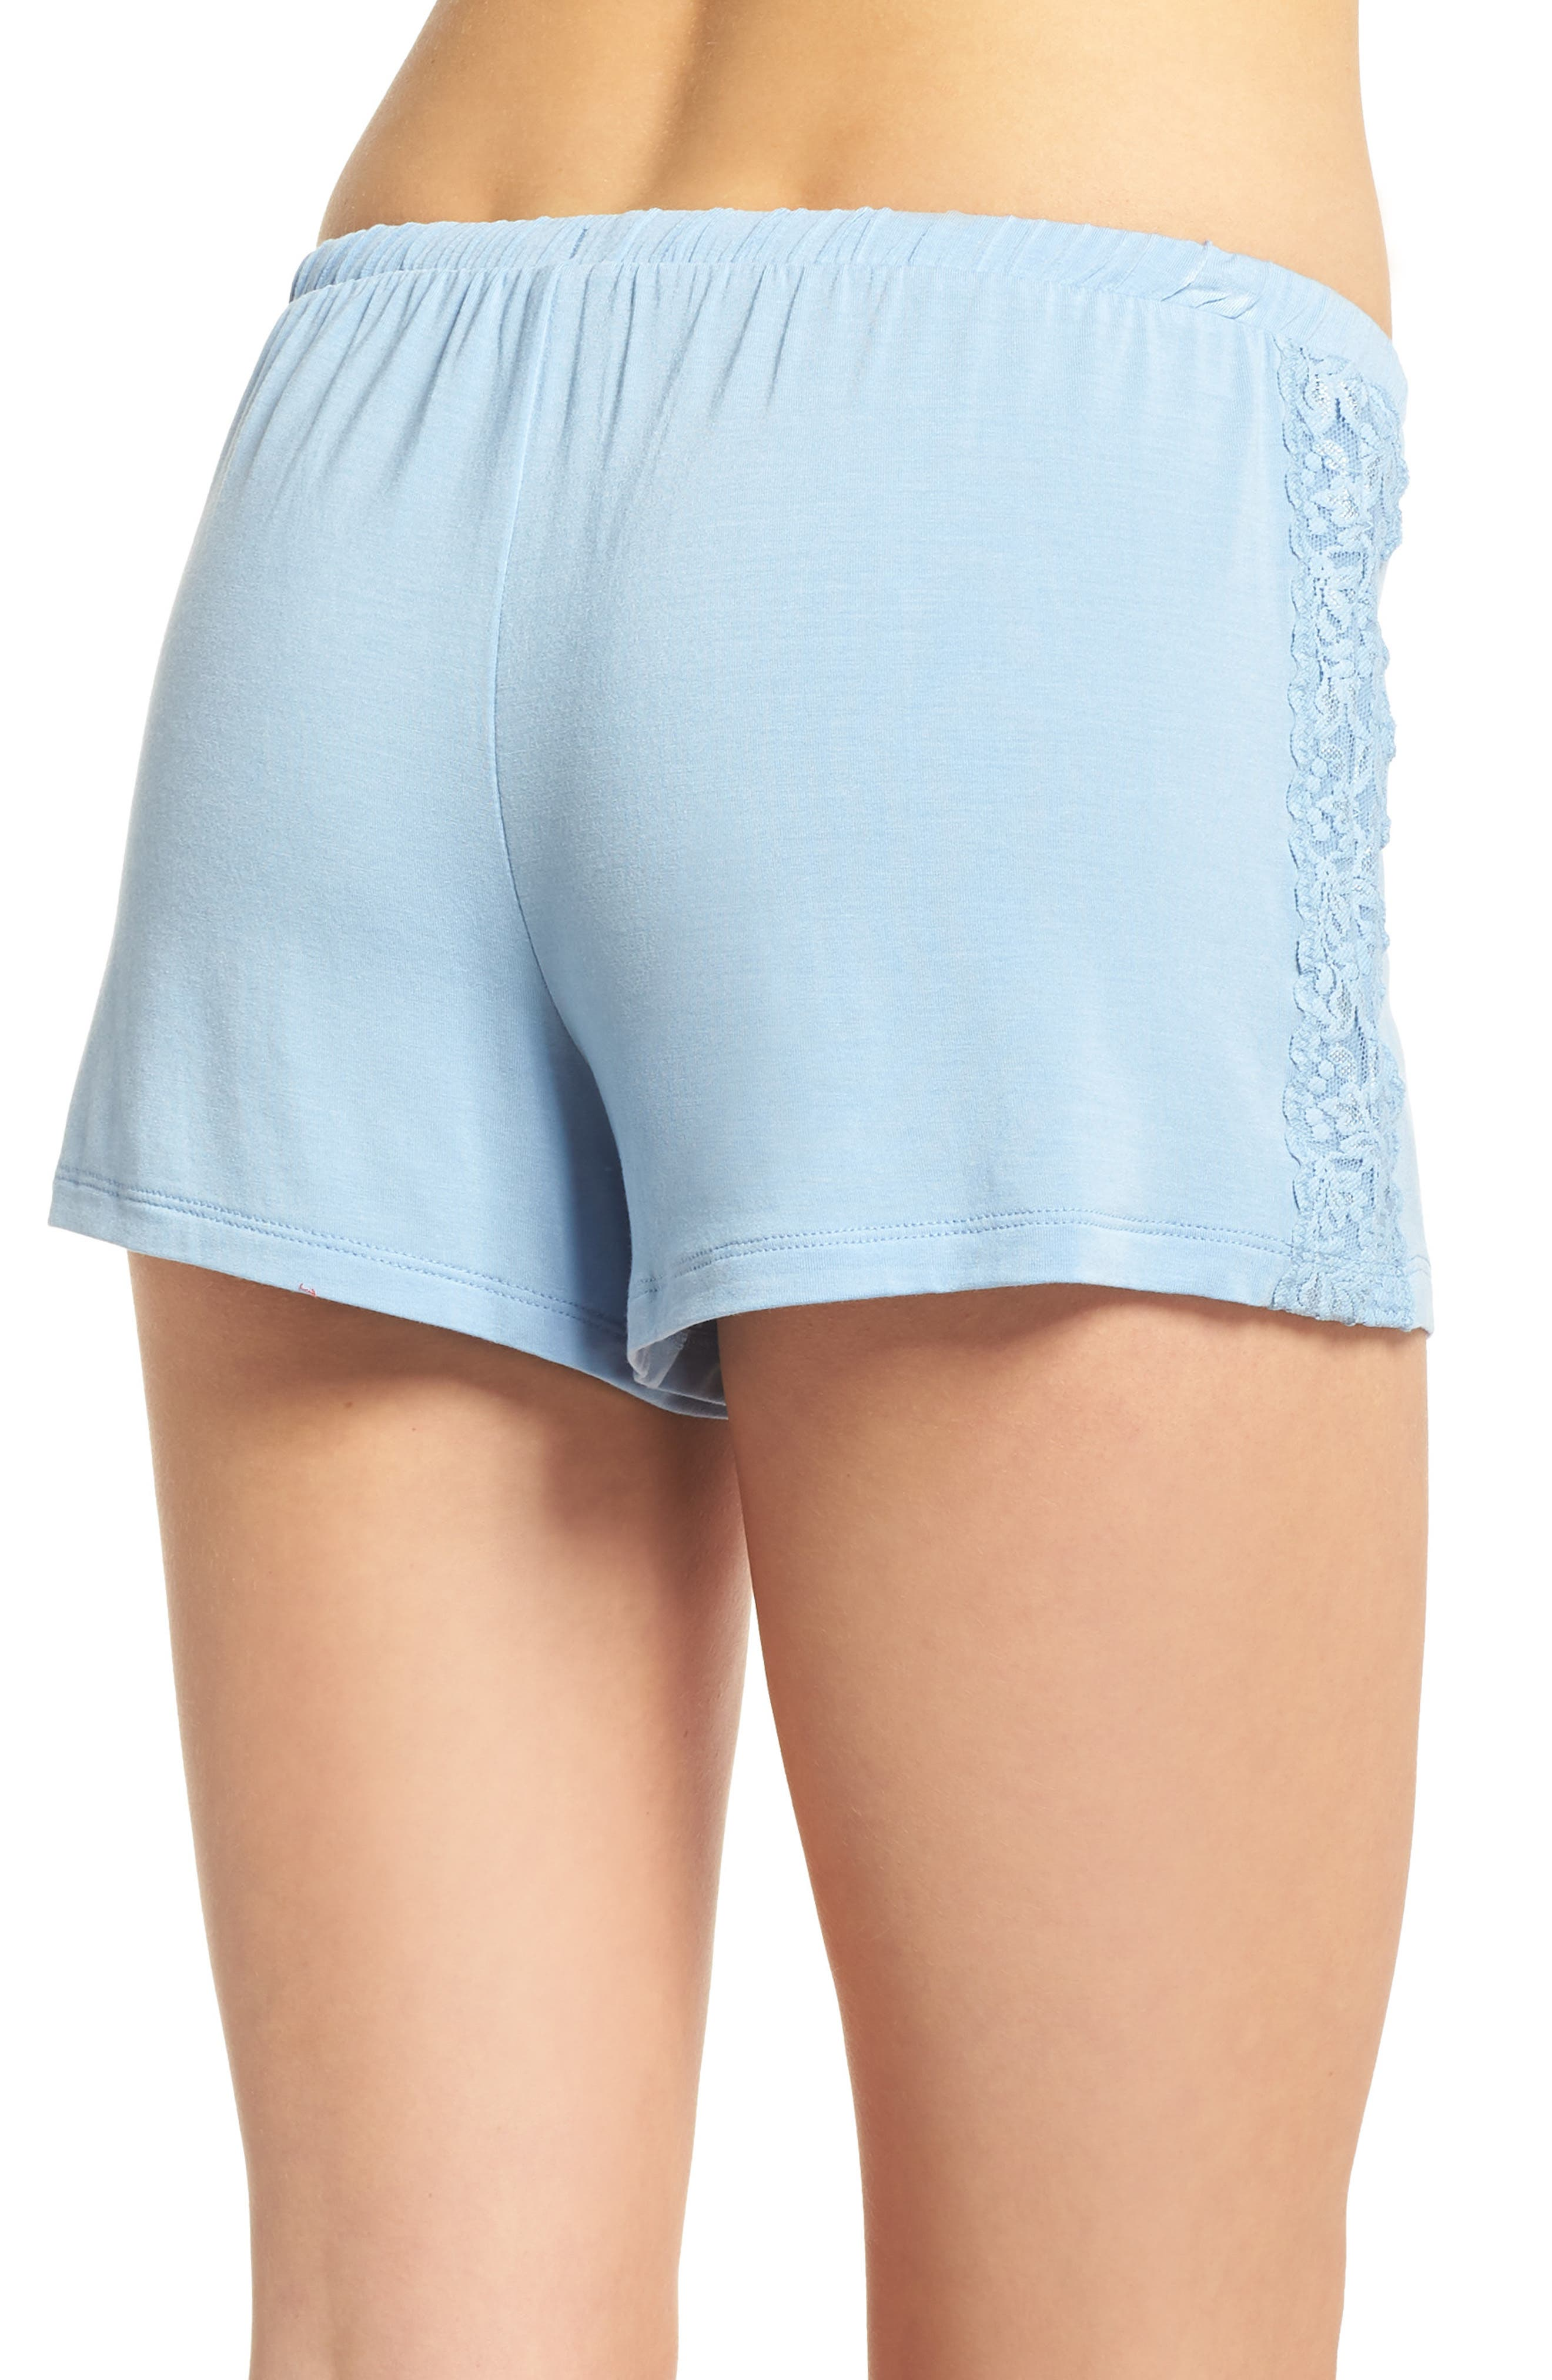 Pajama Shorts,                             Alternate thumbnail 2, color,                             400